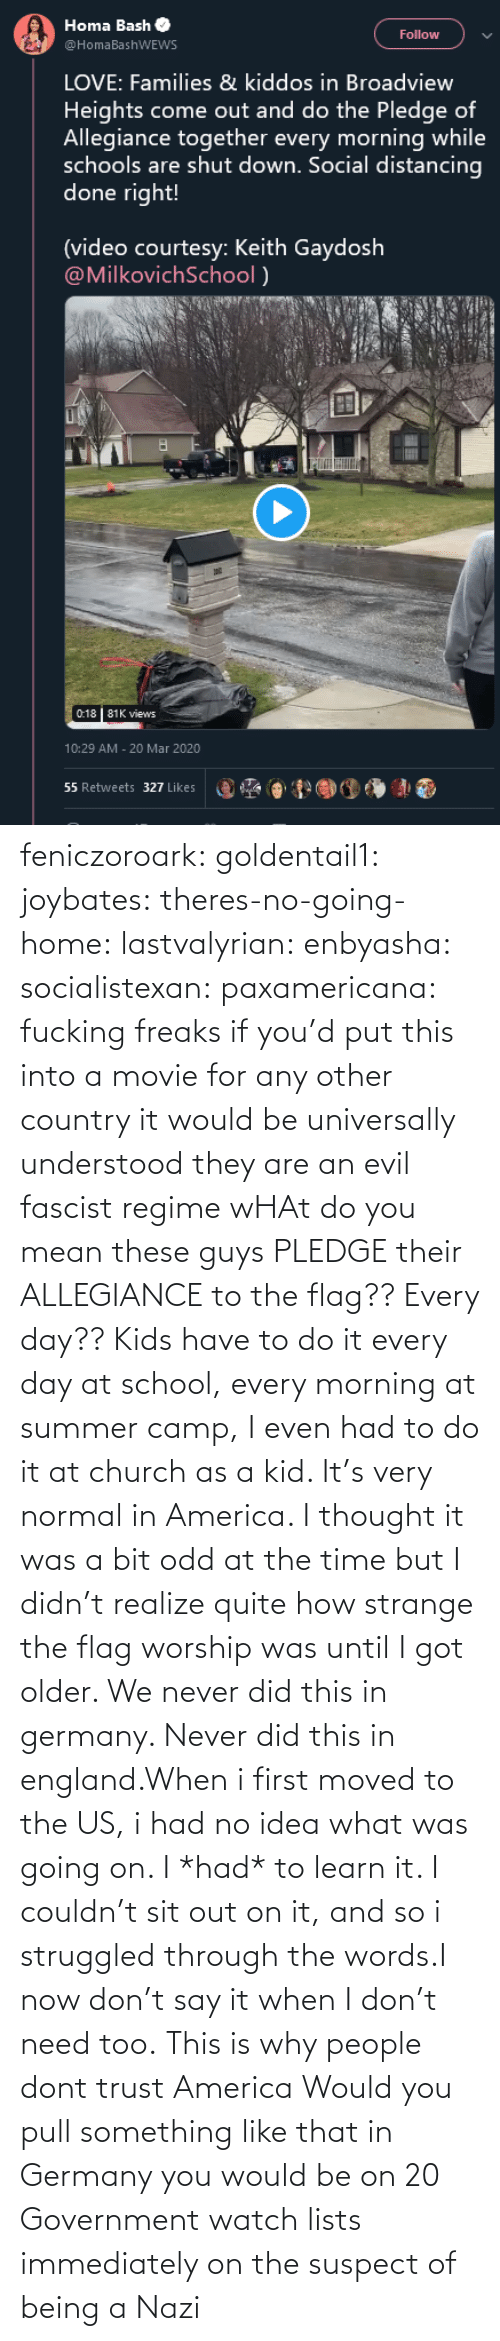 every day: feniczoroark:  goldentail1:  joybates:  theres-no-going-home:  lastvalyrian:  enbyasha:  socialistexan:  paxamericana: fucking freaks       if you'd put this into a movie for any other country it would be universally understood they are an evil fascist regime    wHAt do you mean these guys PLEDGE their ALLEGIANCE to the flag?? Every day??   Kids have to do it every day at school, every morning at summer camp, I even had to do it at church as a kid. It's very normal in America. I thought it was a bit odd at the time but I didn't realize quite how strange the flag worship was until I got older.    We never did this in germany. Never did this in england.When i first moved to the US, i had no idea what was going on. I *had* to learn it. I couldn't sit out on it, and so i struggled through the words.I now don't say it when I don't need too.   This is why people dont trust America    Would you pull something like that in Germany you would be on 20 Government watch lists immediately on the suspect of being a Nazi